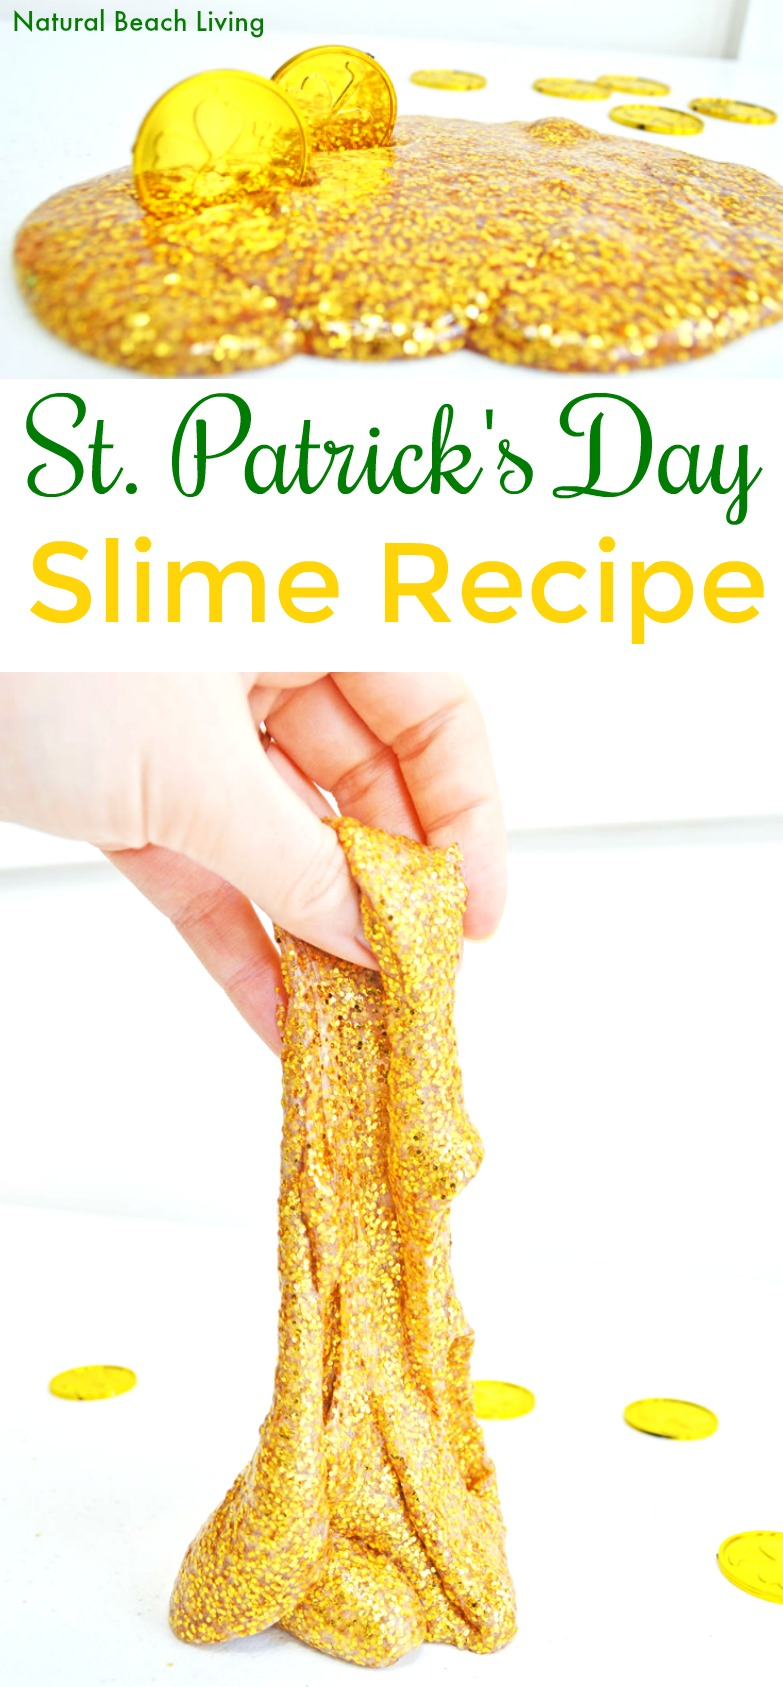 How to Make Slime Recipe with Contact Solution Kids Loves, Perfect Gold Glitter Contact Solution Slime Recipe or Saline Solution slime with glue! One of the Best Sensory Play ideas for Kids, Homemade slime is super easy to make with our slime recipes. The Best Ways to Make Slime with contact solution, Easy Slime Recipe with Baking Soda